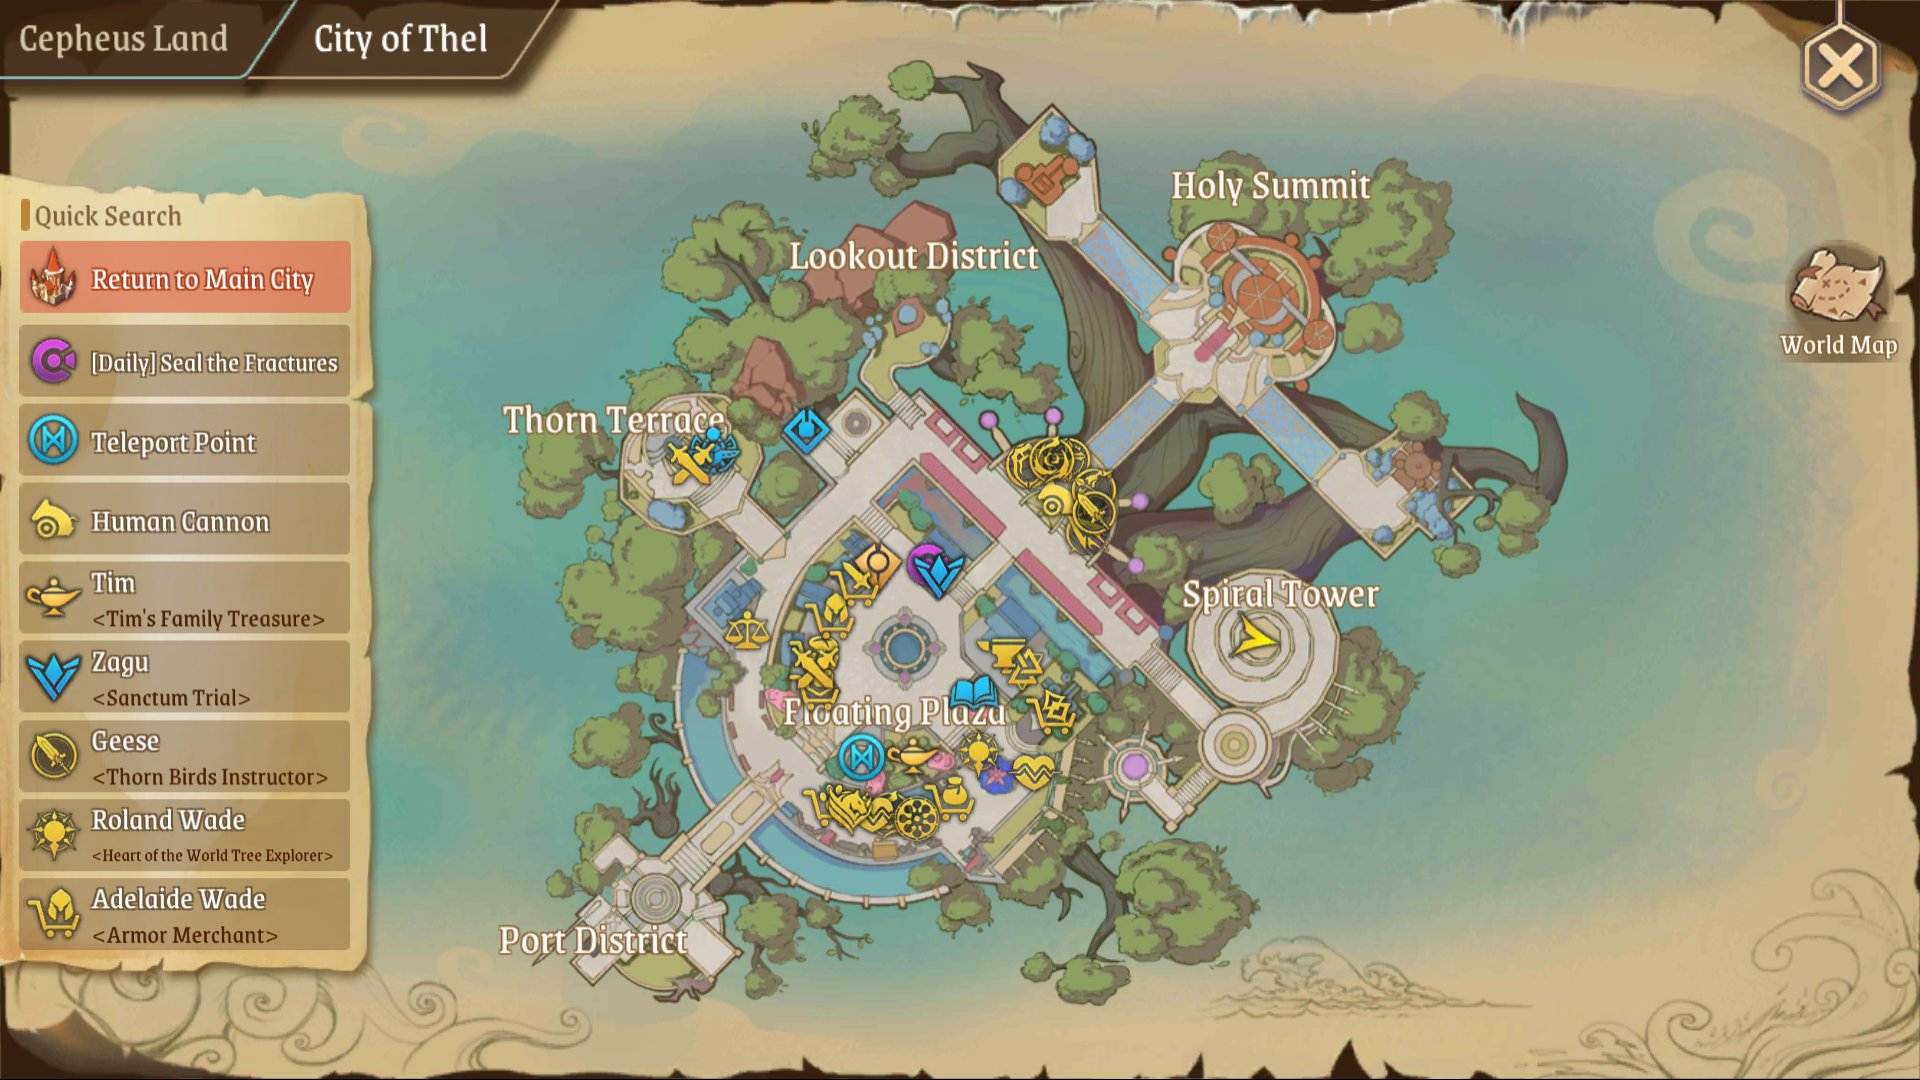 Treasure Map (L) 5: City of Thel right area top of Spiral Tower